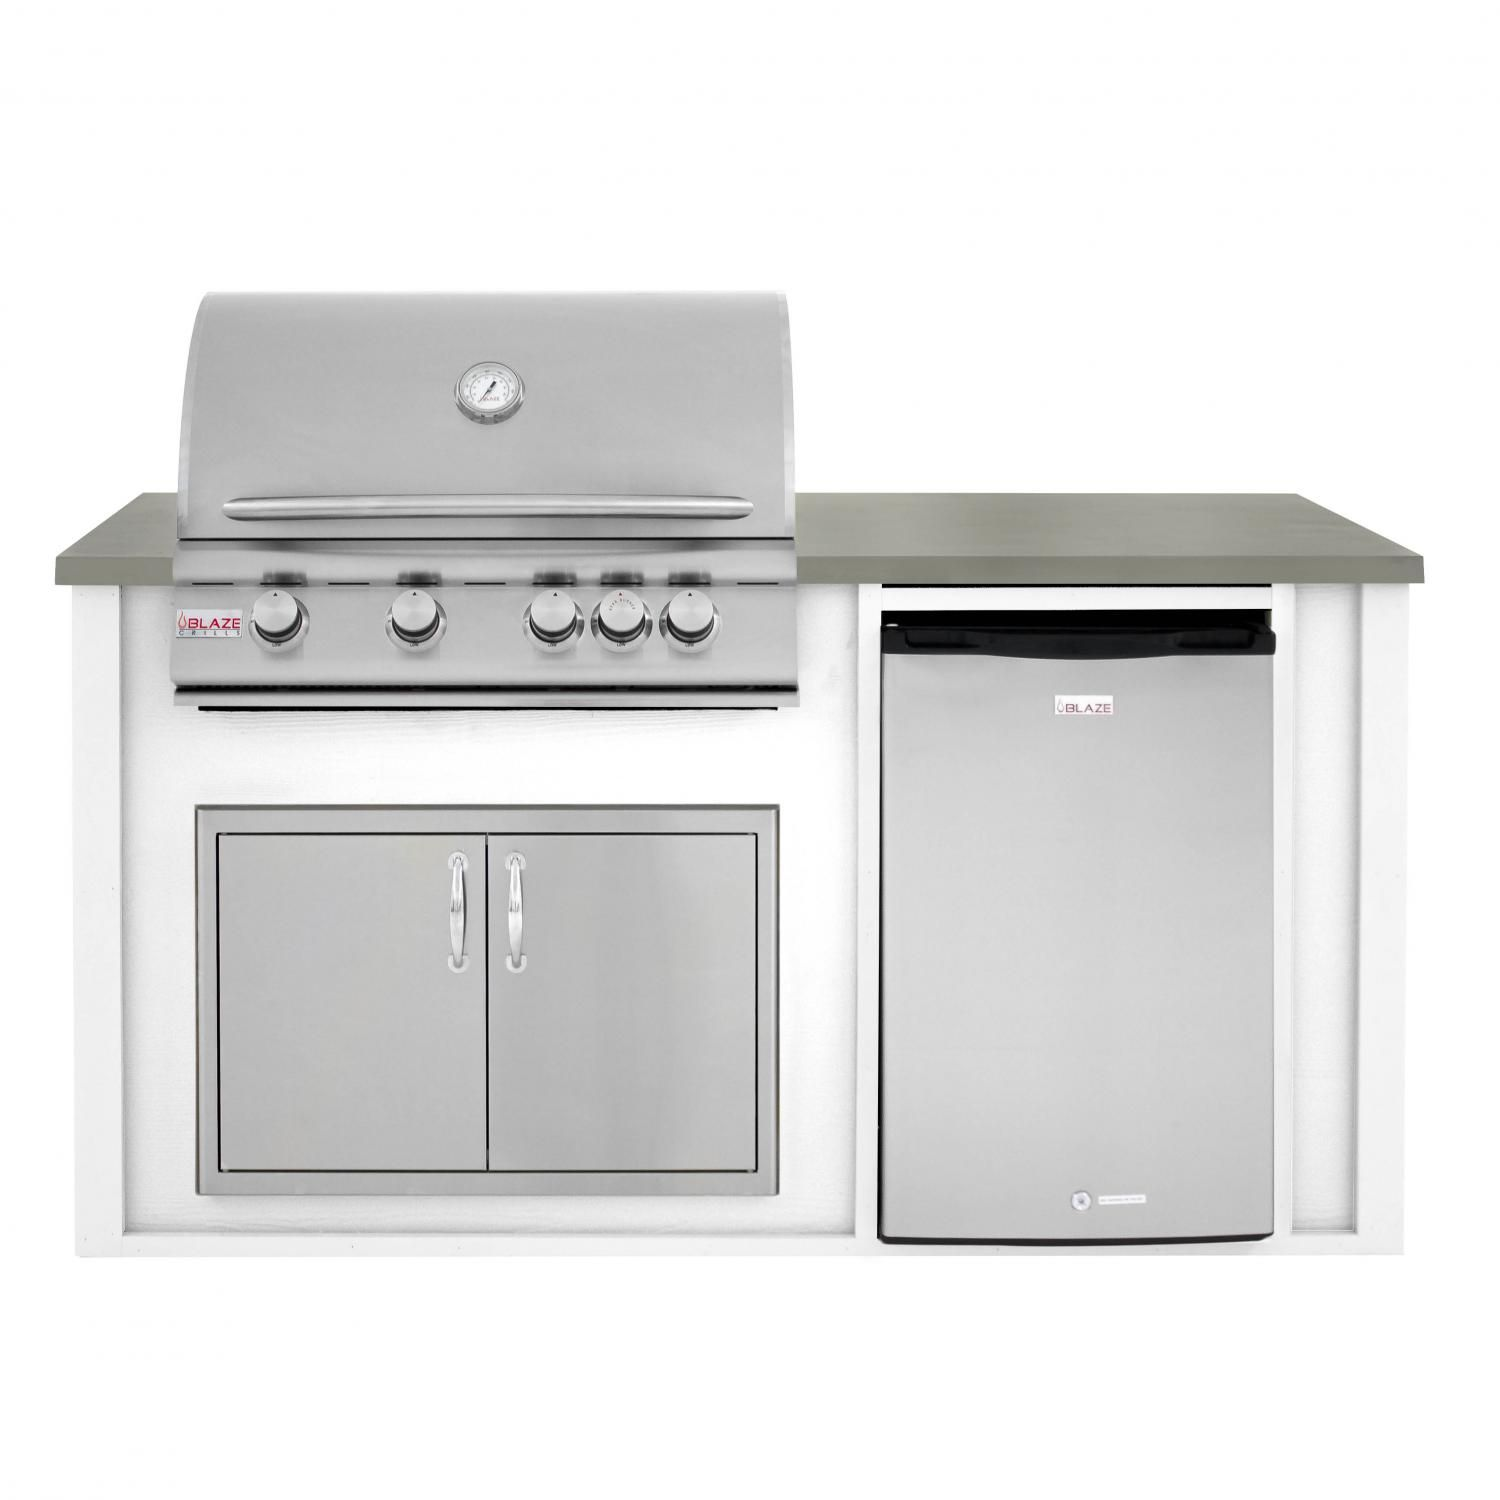 Bbqguys 6 Ft Bbq Island With Blaze 32 Inch Natural Gas Grill Double Access Door Compact Refrigerator White Gray Blzad4 5ng 6vp4pwng Bbqguys Modular Outdoor Kitchens Natural Gas Grill Compact Refrigerator